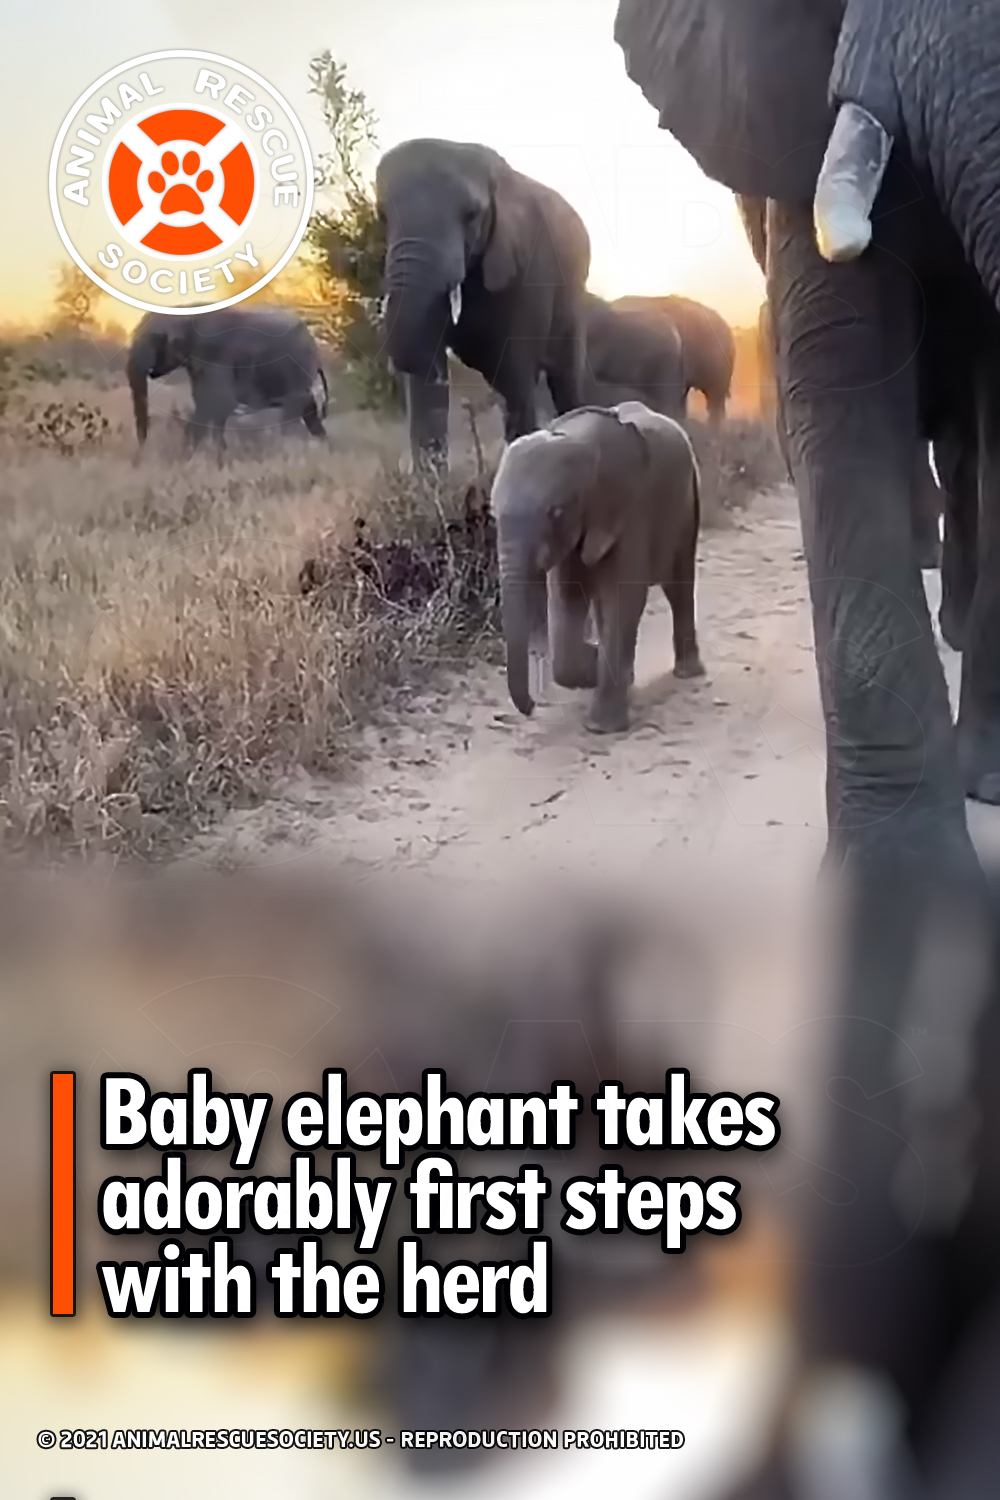 Baby elephant takes adorably first steps with the herd